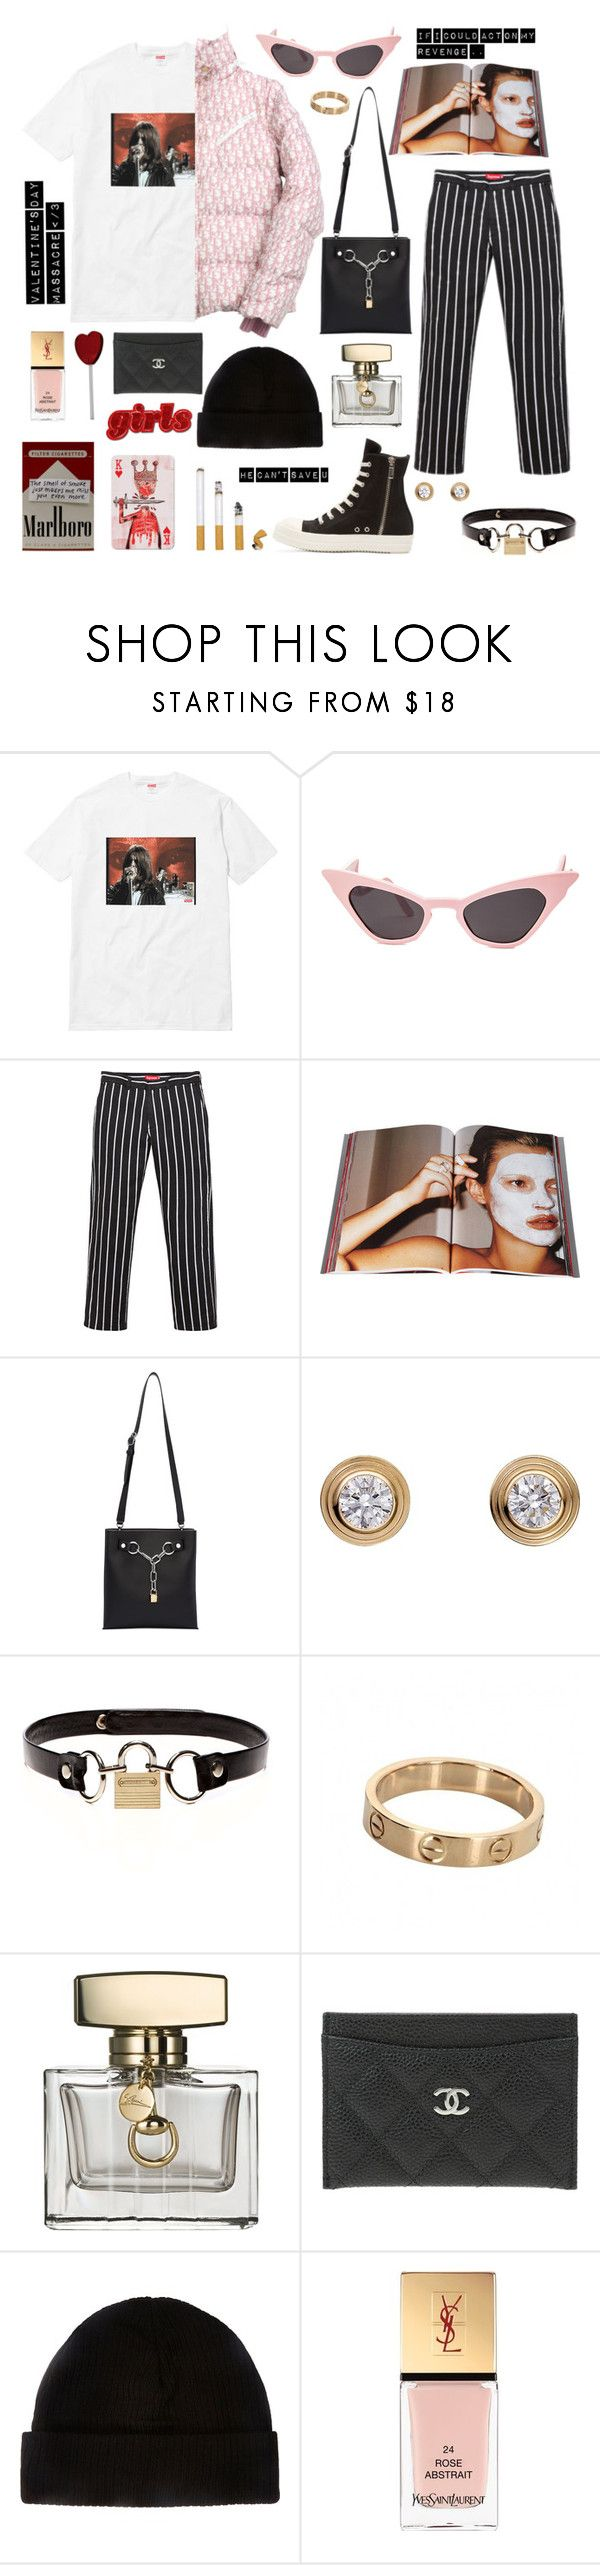 """Iron Man"" by lilslipknot ❤ liked on Polyvore featuring Taschen, Alexander Wang, Cartier, Rodarte, Gucci, Chanel and Yves Saint Laurent"